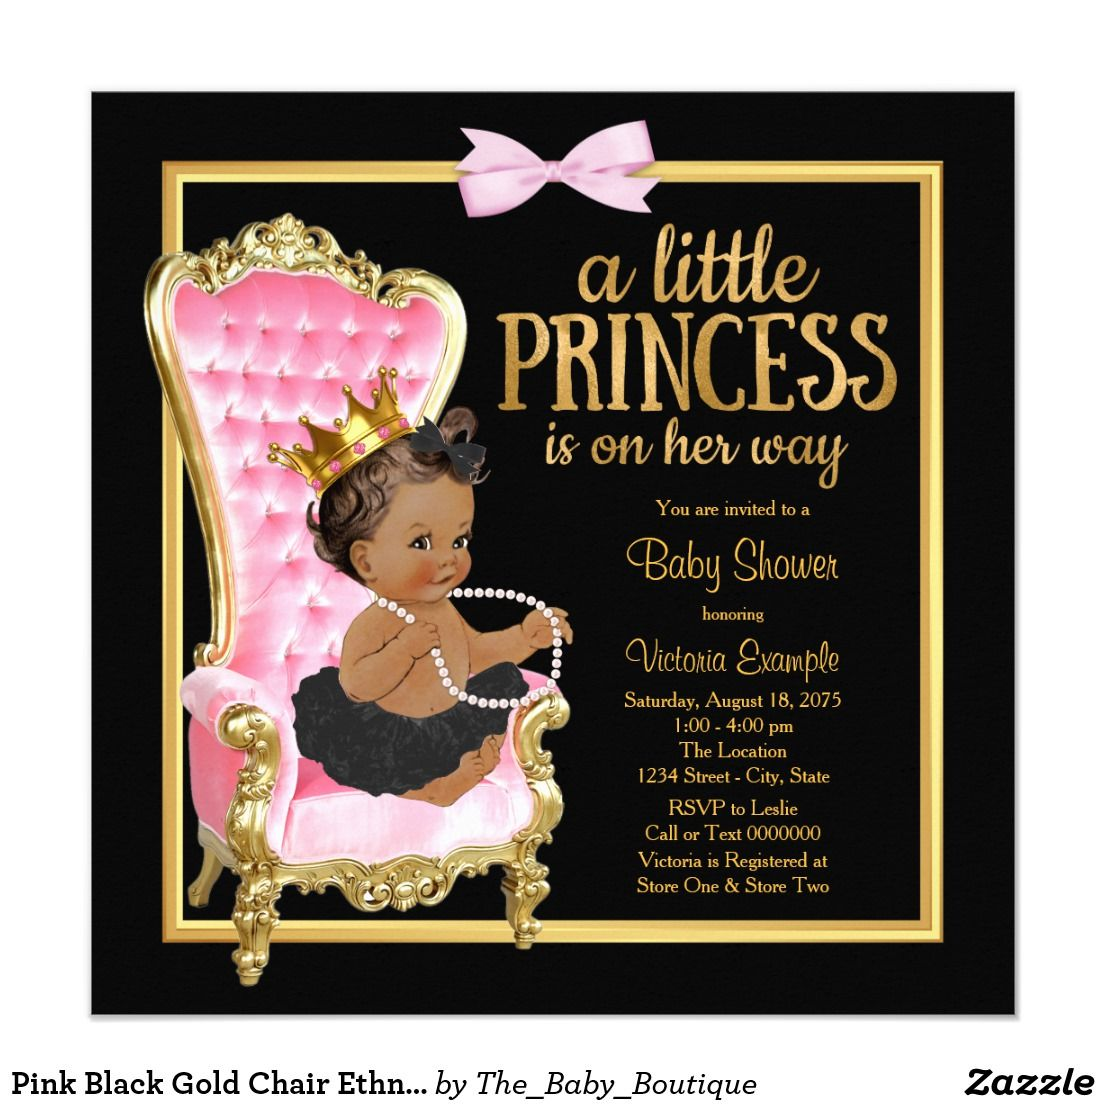 Pink Black Gold Chair Ethnic Princess Baby Shower Card